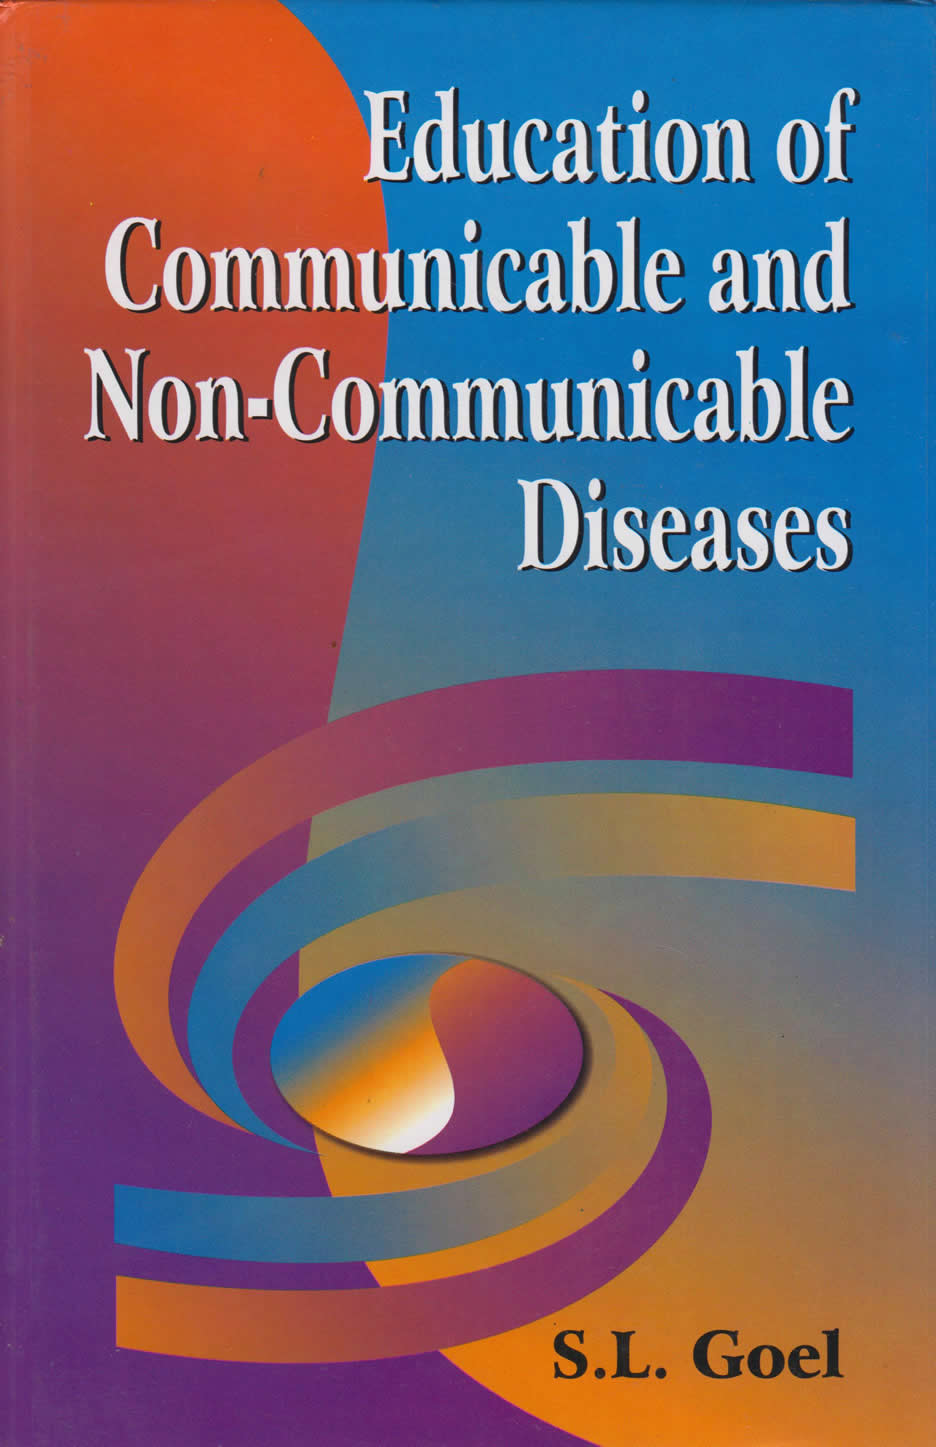 Communicable Diseases Book